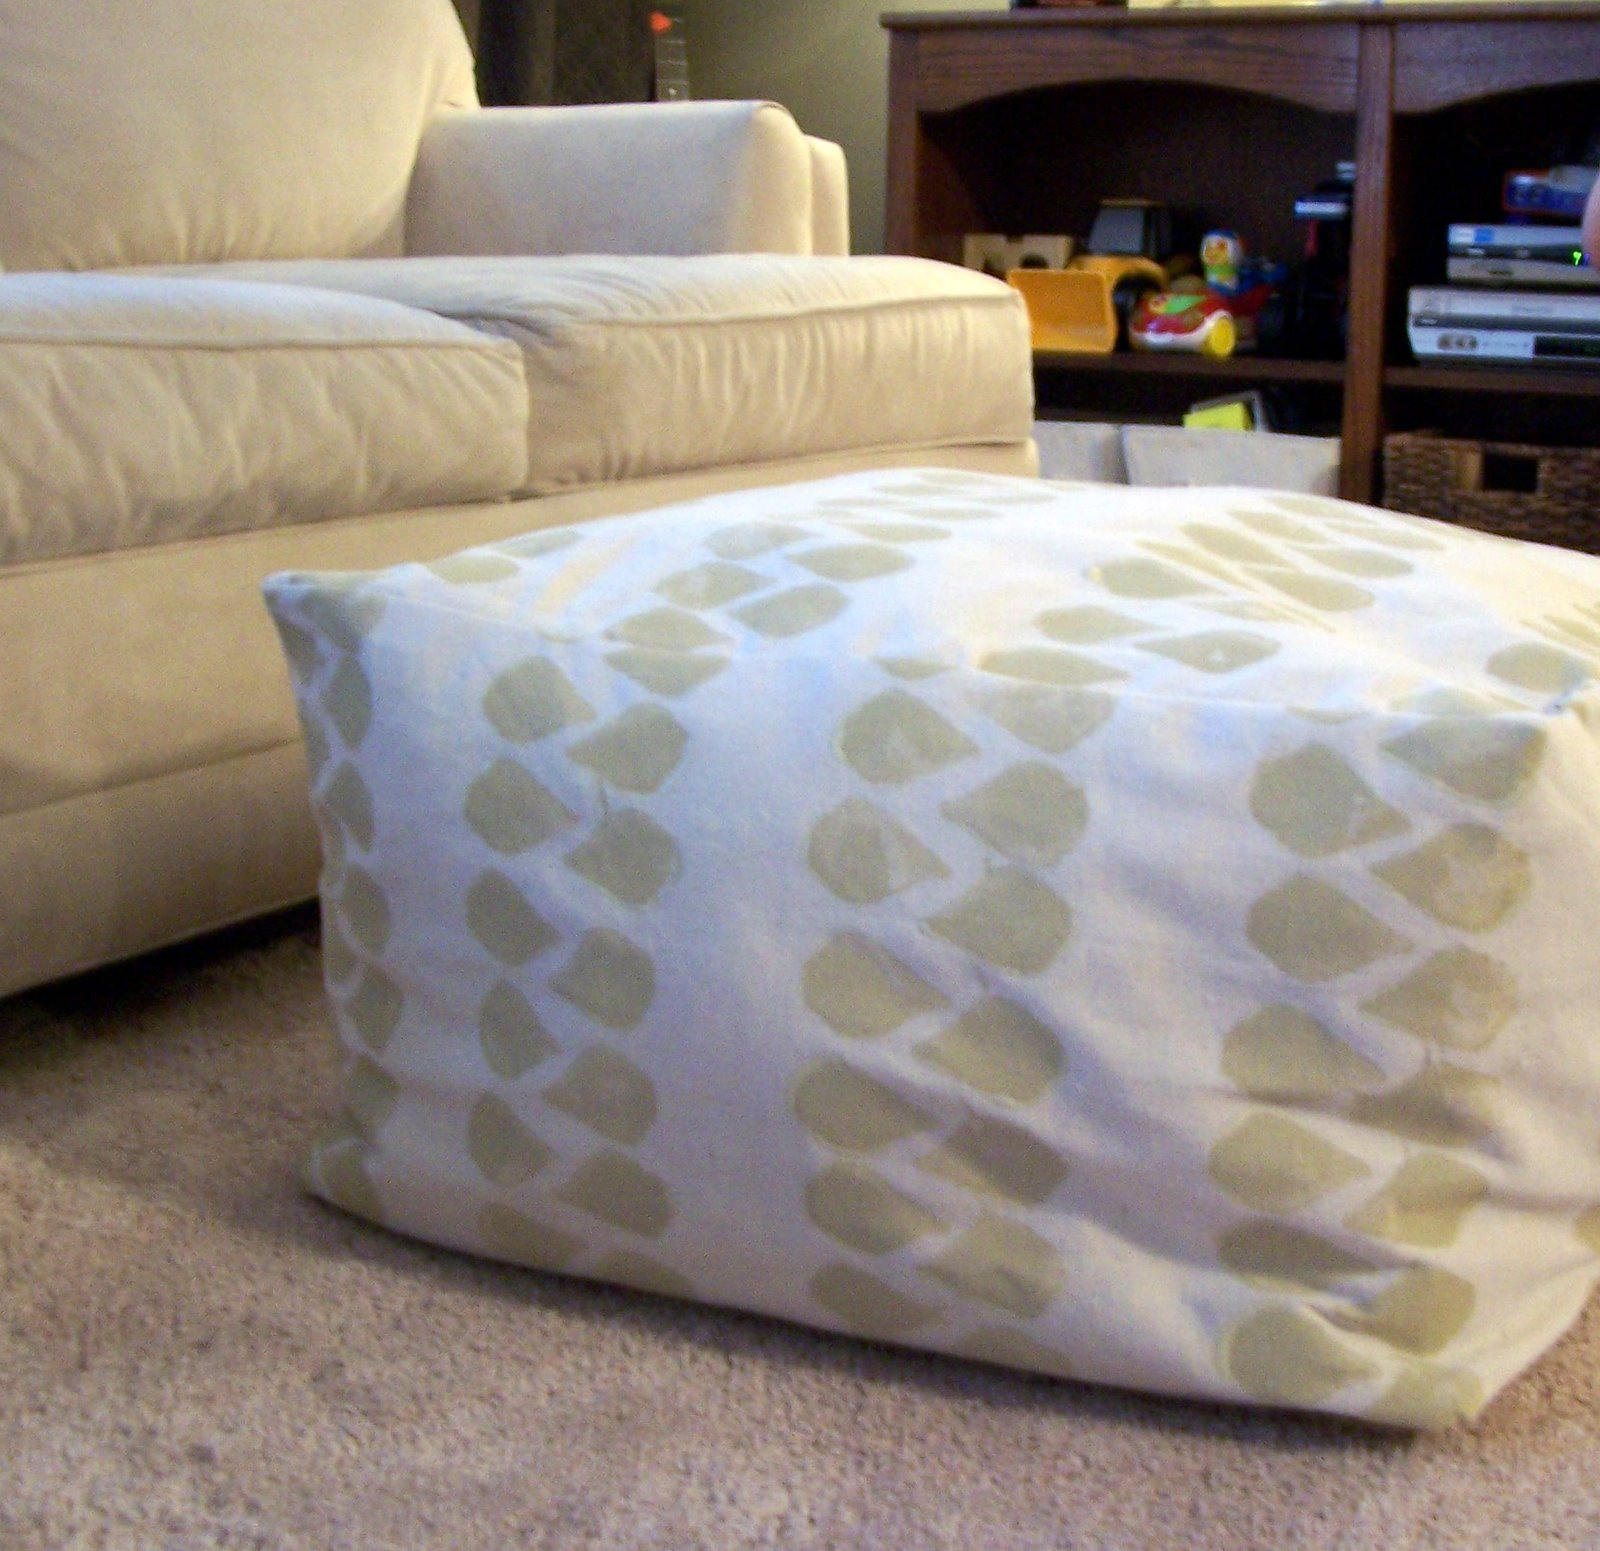 The Cre8tive Outlet Diy Square Pouf